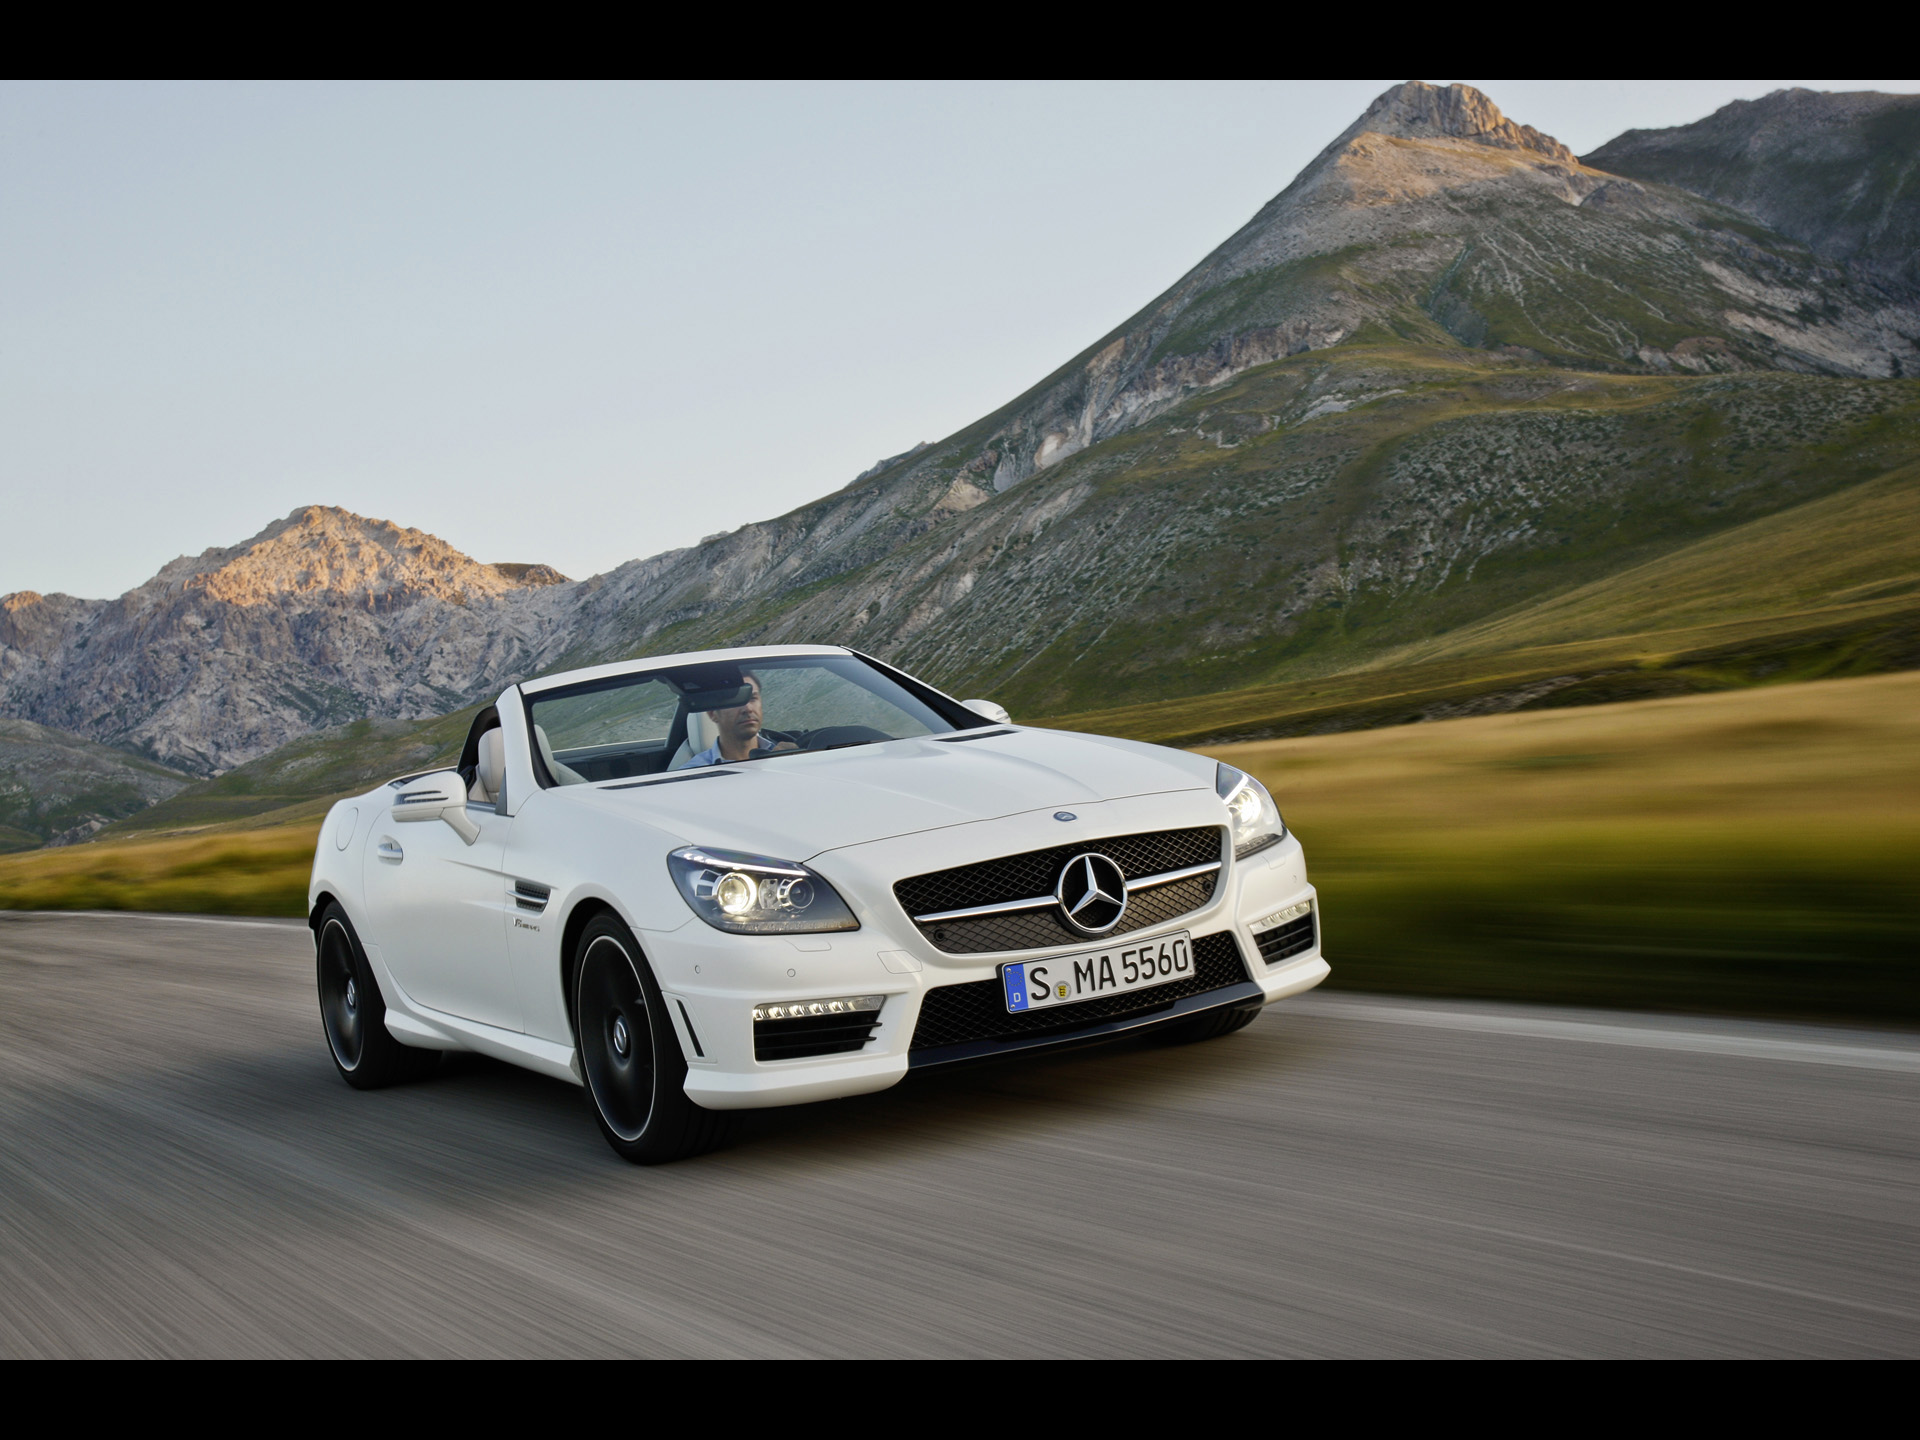 Mercedes Benz SLK 55 AMG Top Down Speed Wallpapers